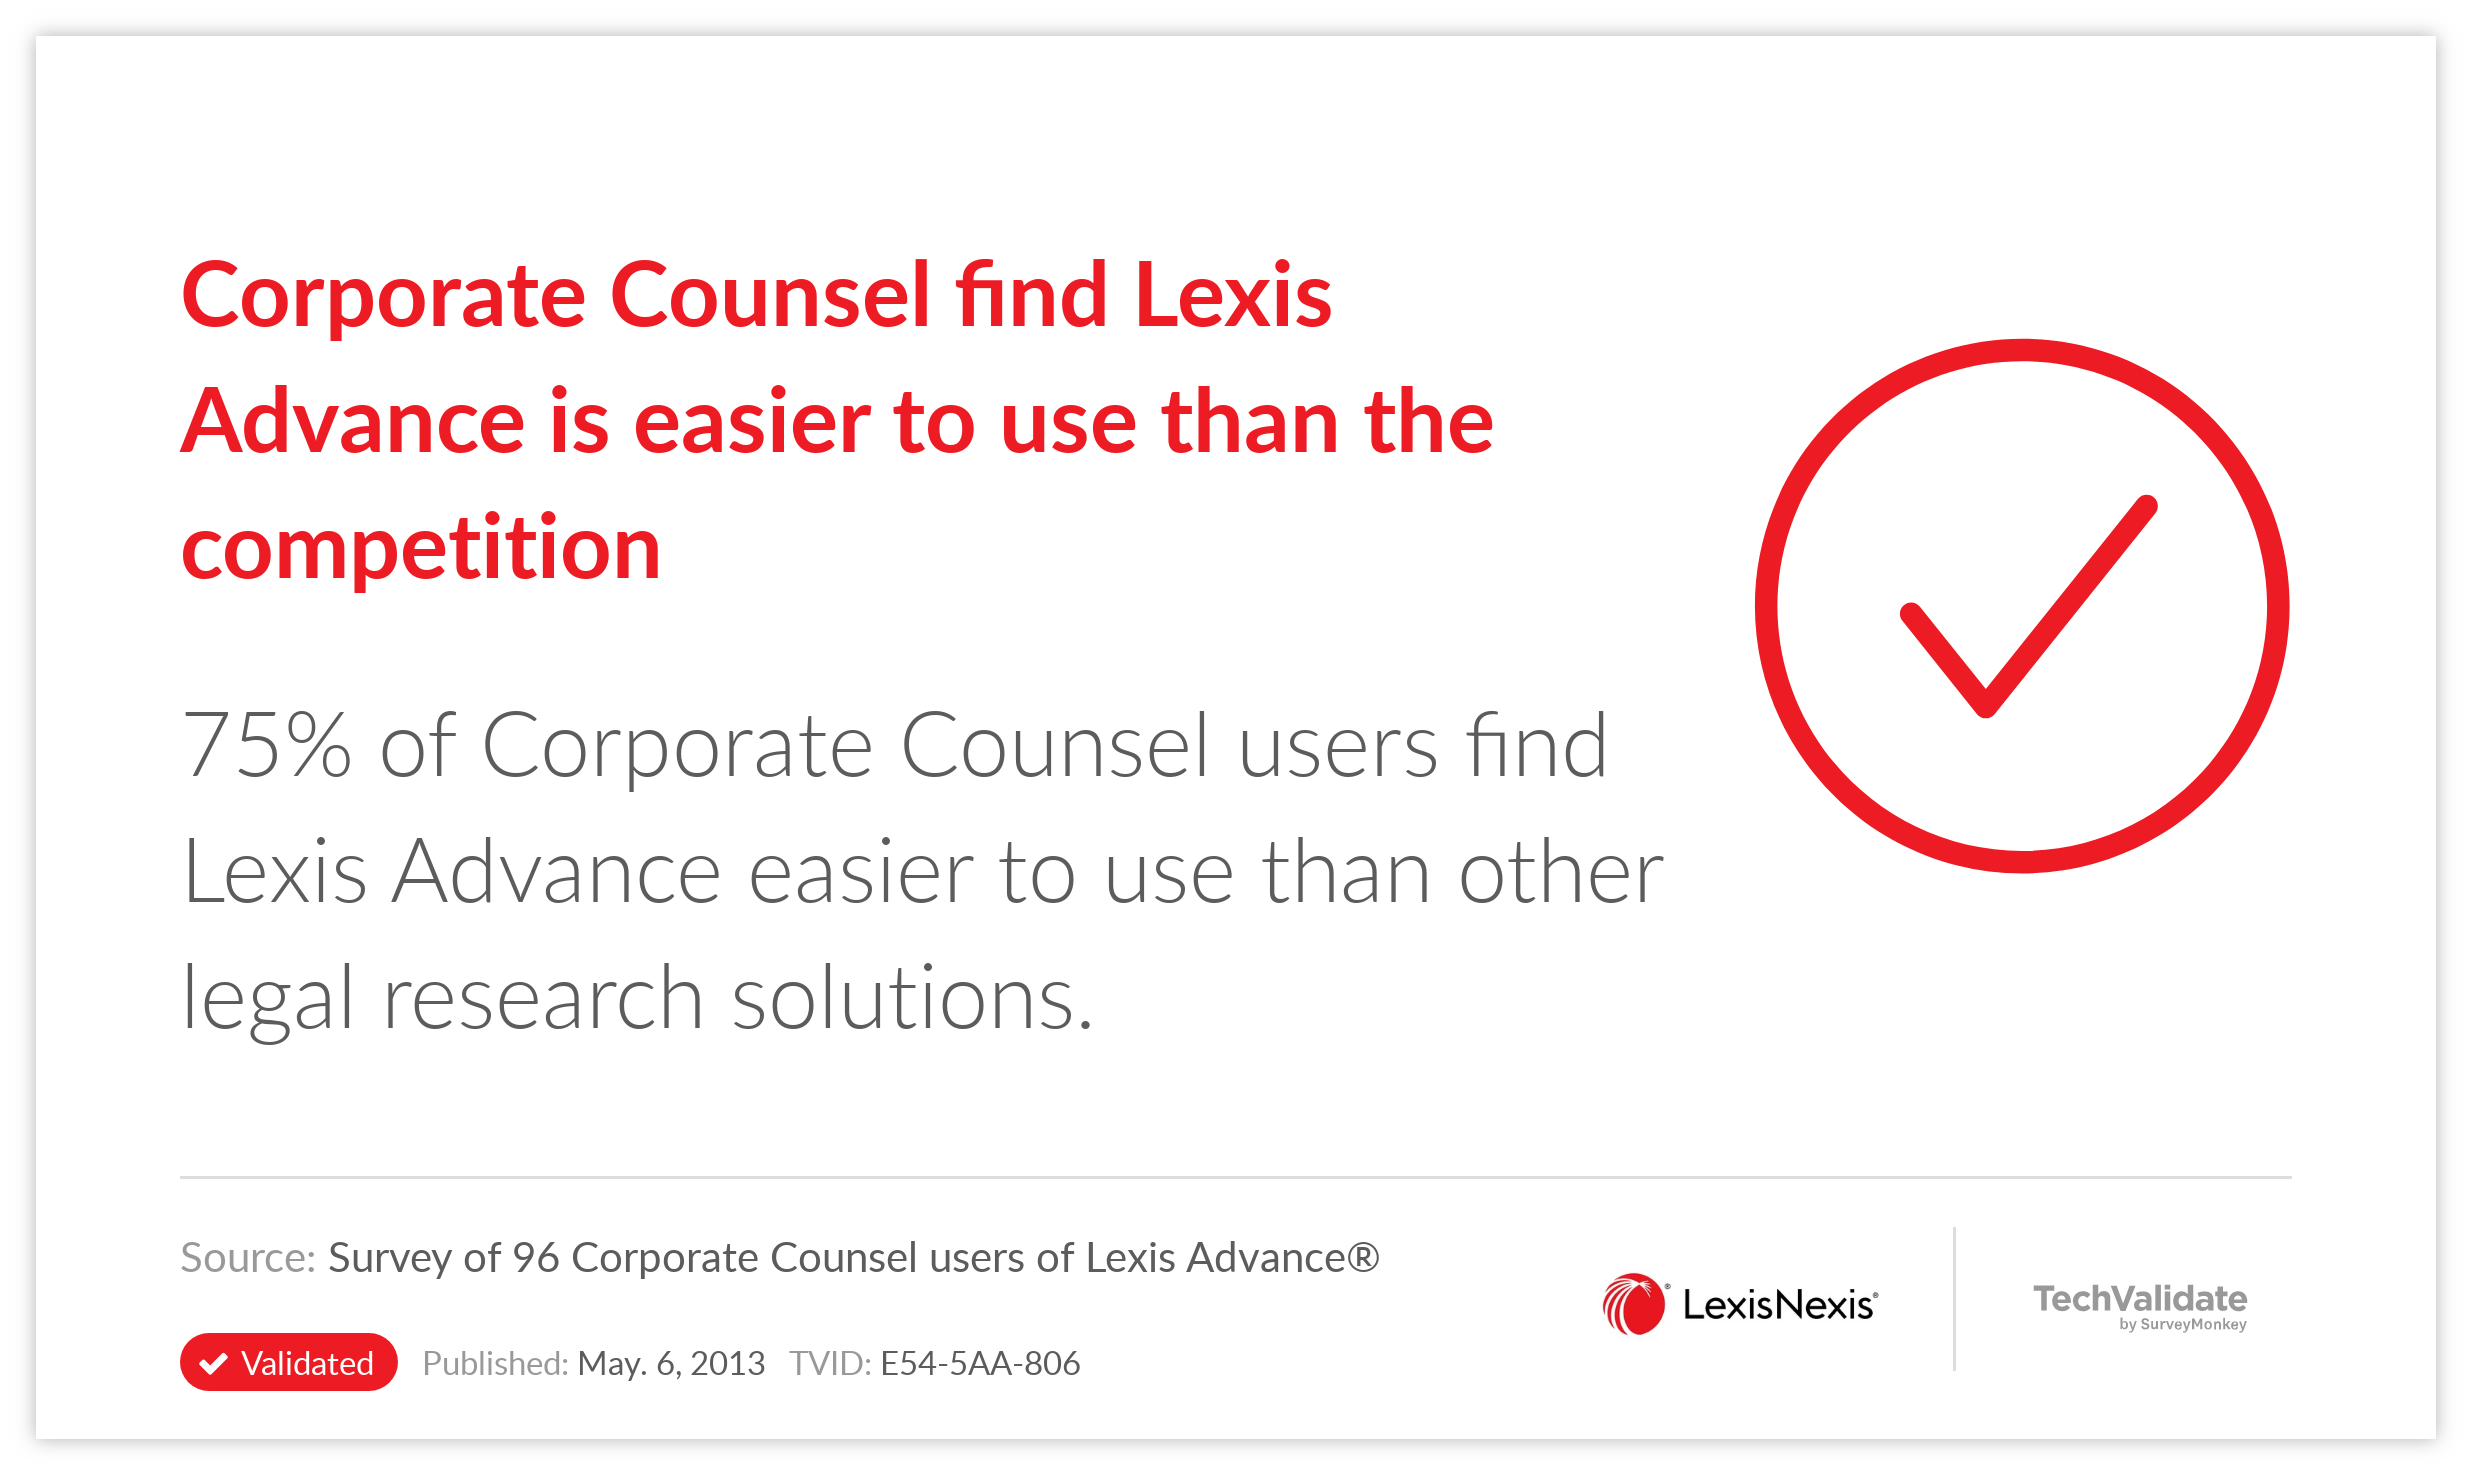 Corporate Counsel find Lexis Advance is easier to use than the competition